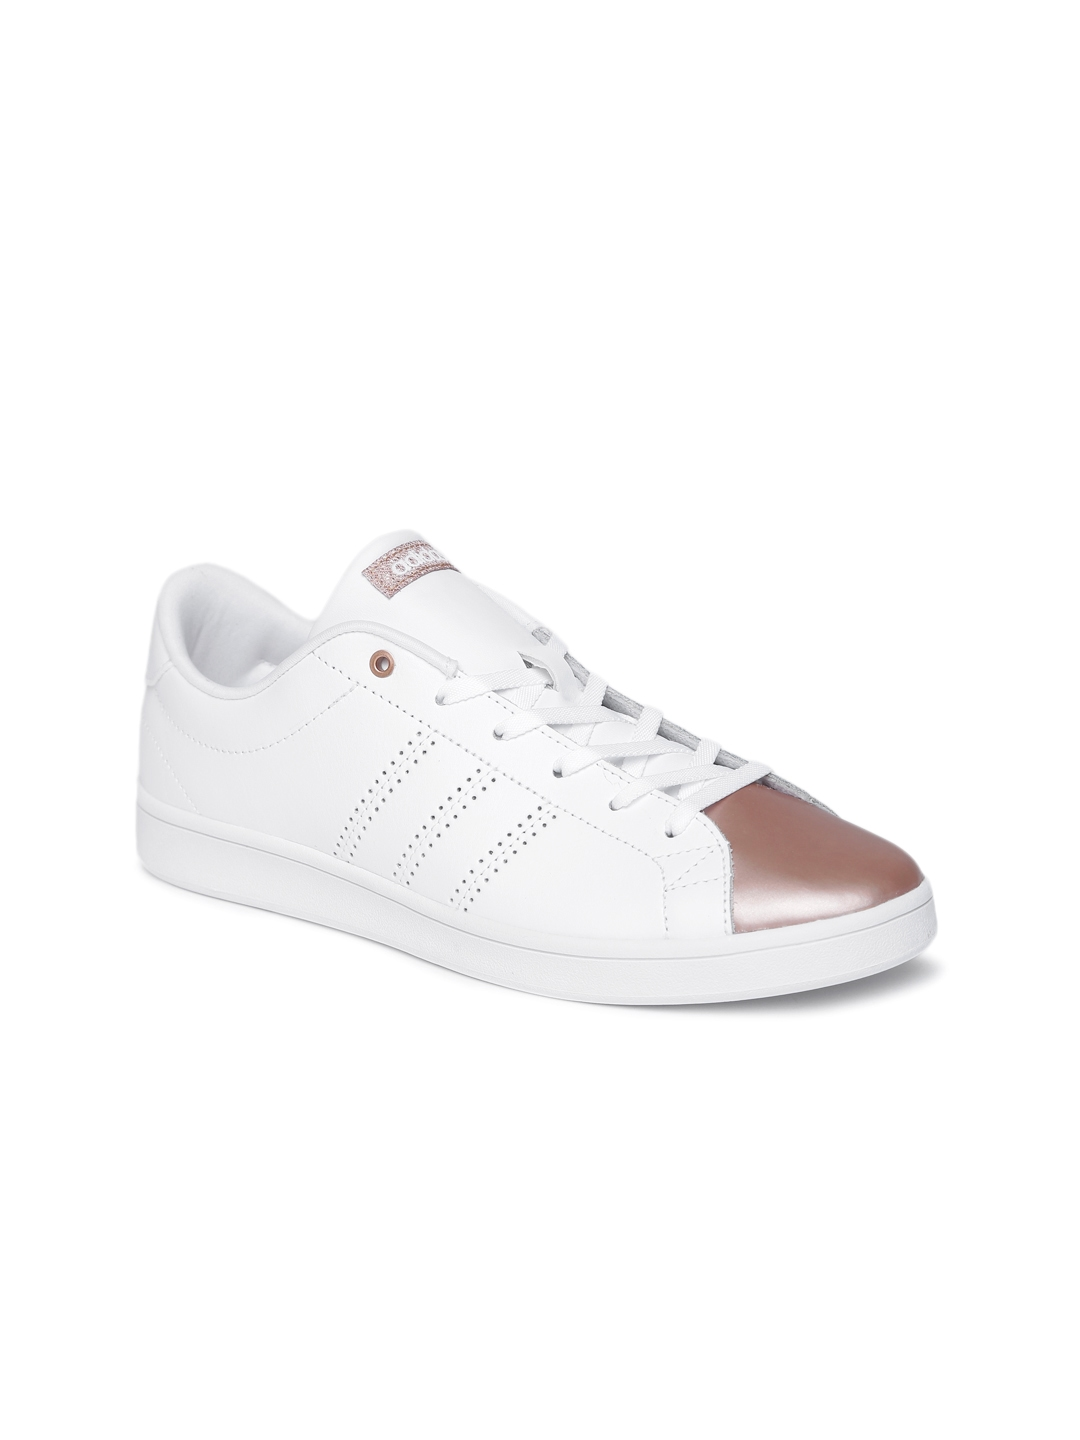 low priced c357a 57e05 ADIDAS NEO Women White  Brown Solid Advantage Clean QT Sneakers